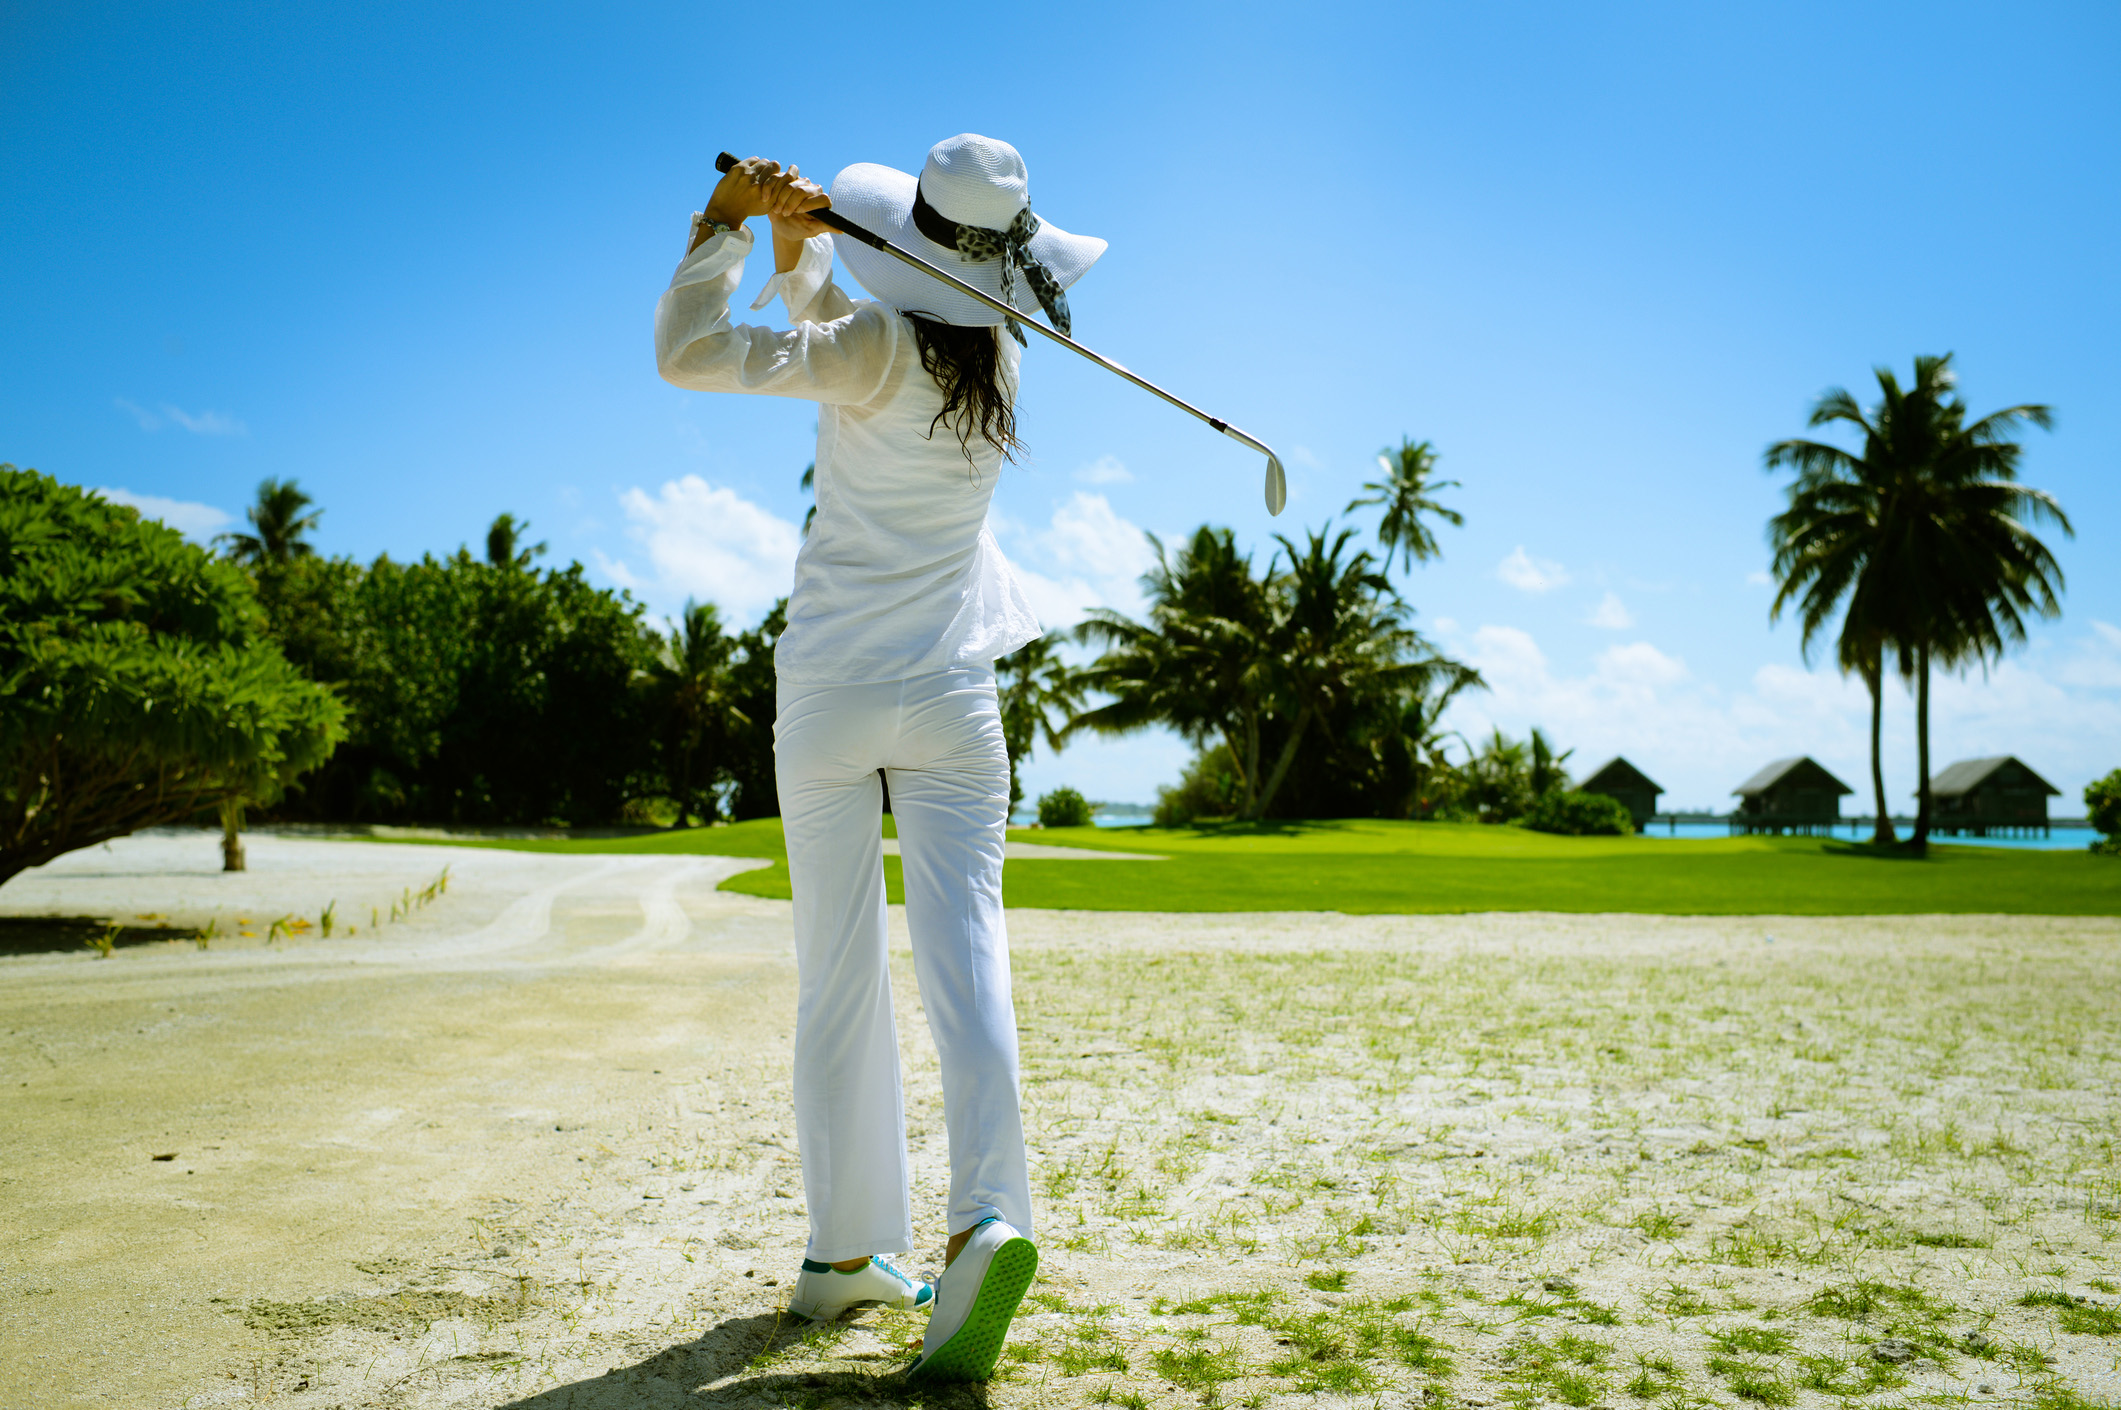 Mauritius boasts a large number of golf courses, many of which offer open coastal panoramas.